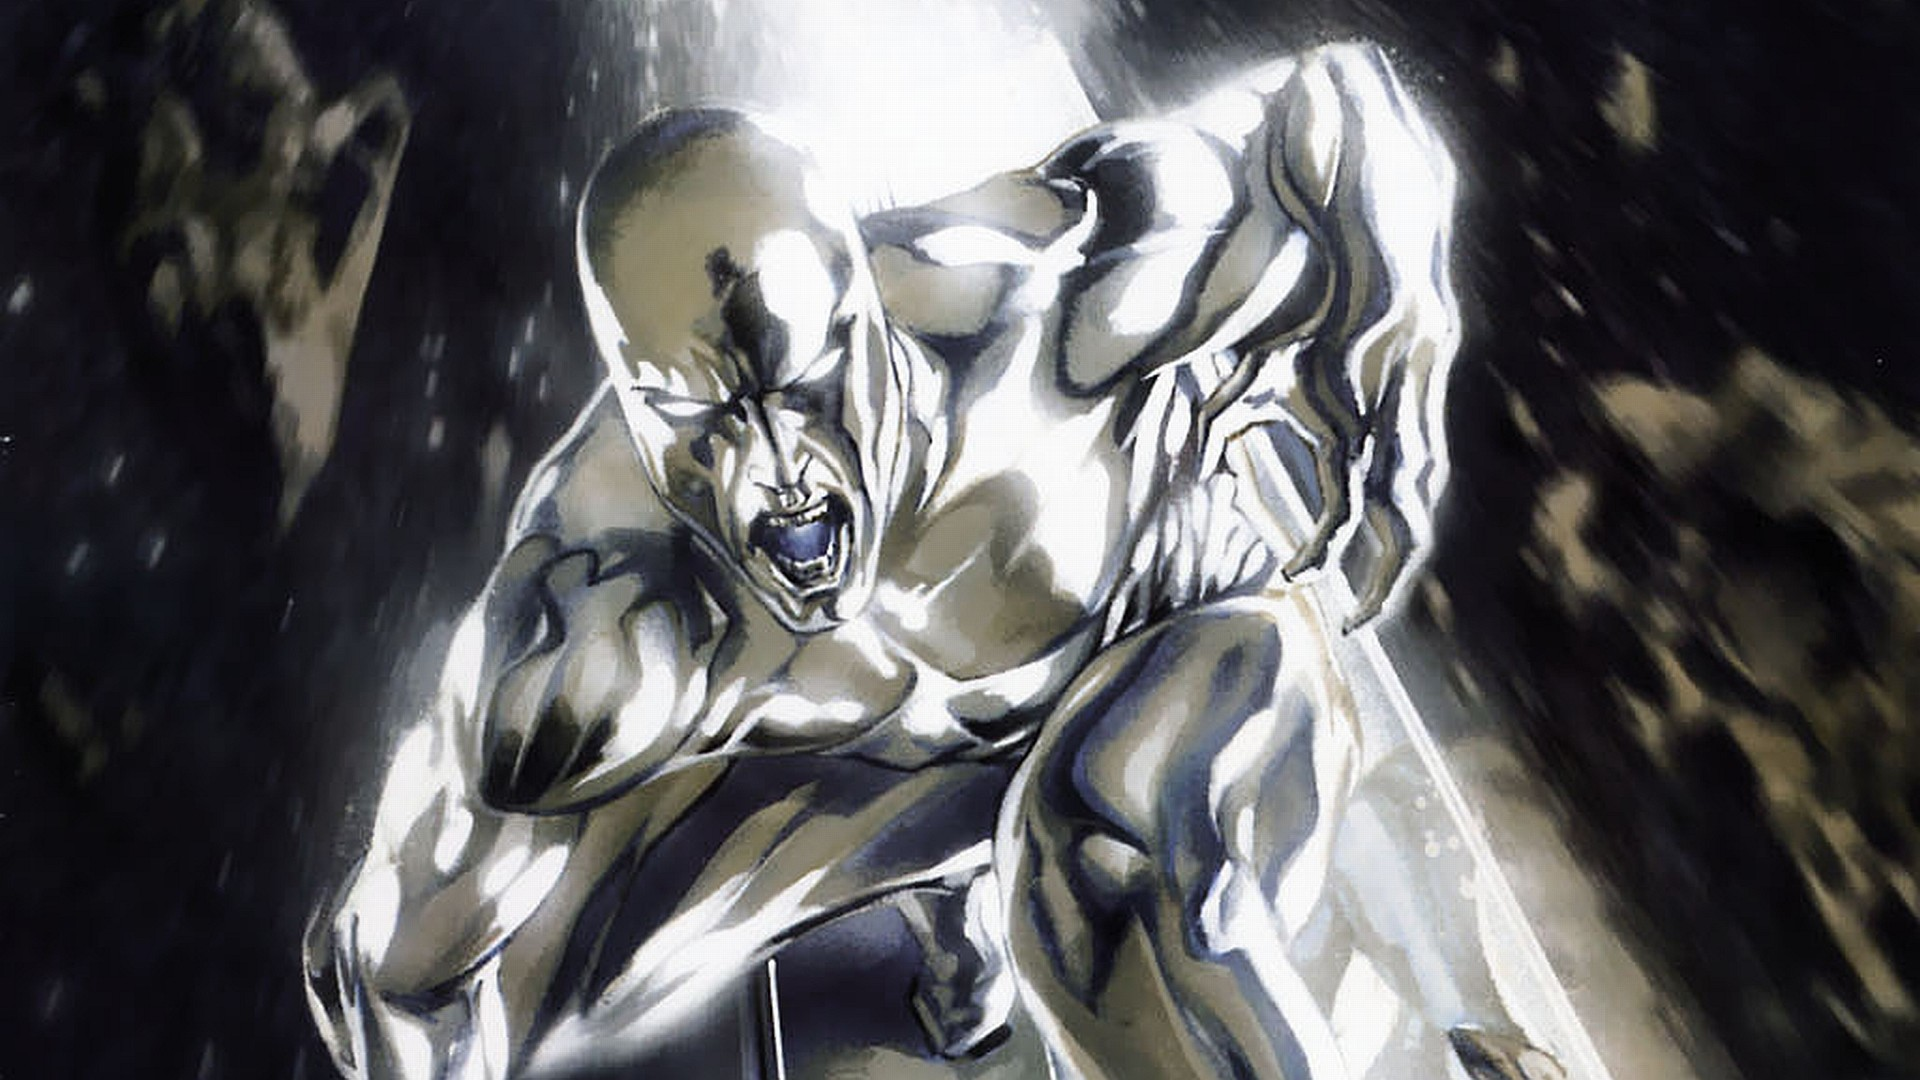 55 Silver Surfer HD Wallpapers   Backgrounds – Wallpaper Abyss – Page 2